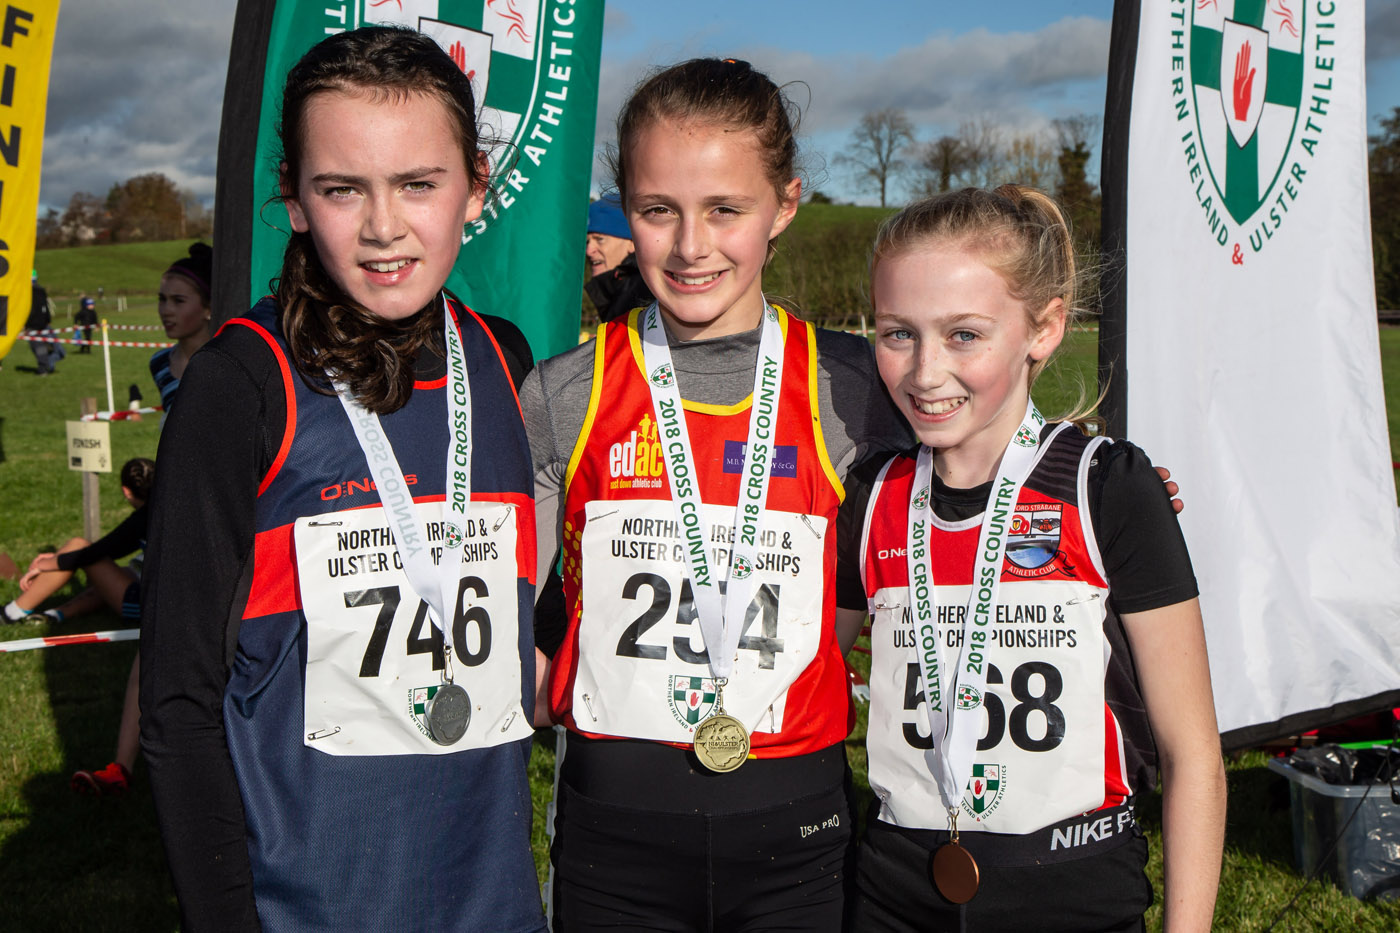 Local Athletes take on the All-Ireland Uneven Age Groups and the North West XC